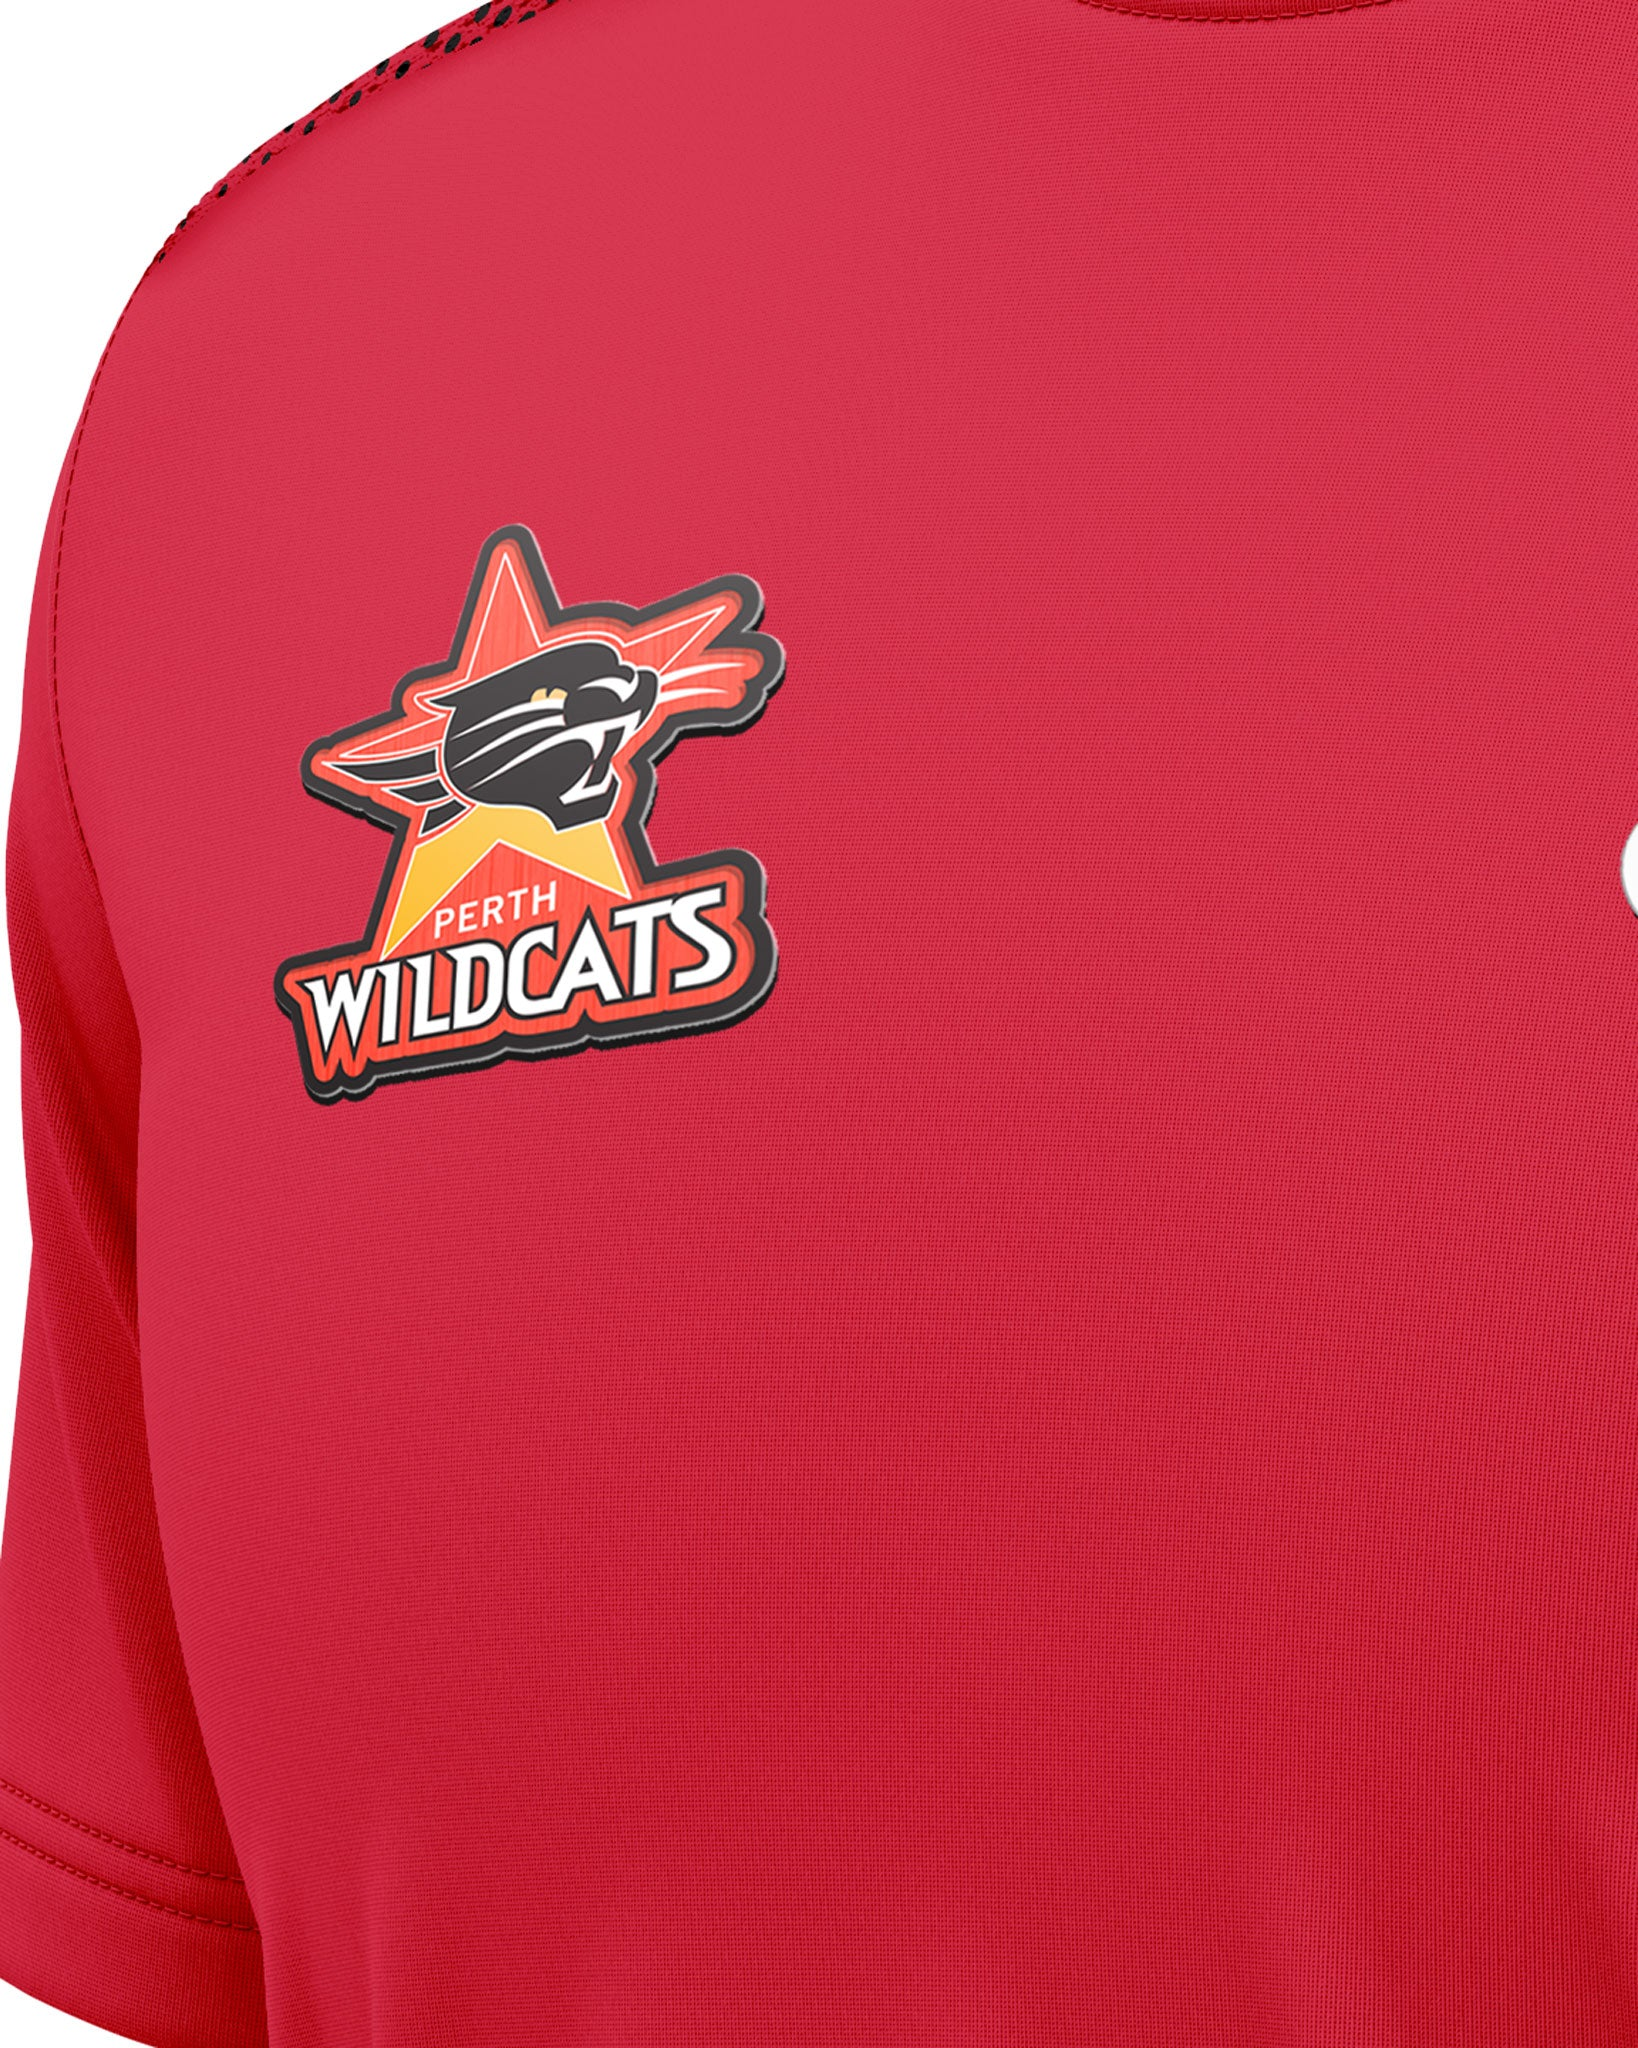 Perth Wildcats 20/21 Performance T-Shirt